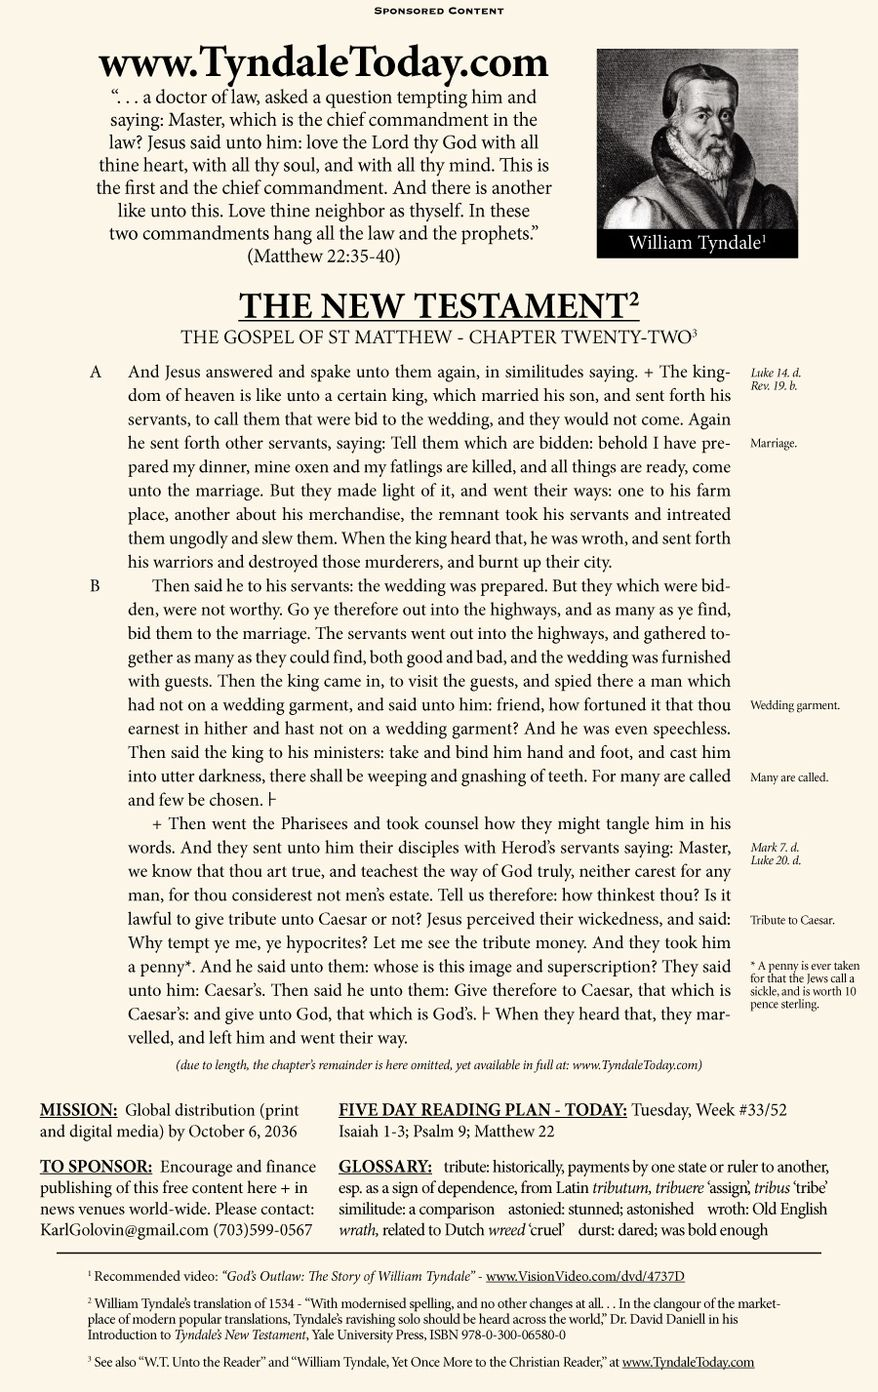 A daily reading of William Tyndale's 1534 translation of The New Testament from Tyndale Today. (Sponsored content August 15, 2017 in The Washington Times)